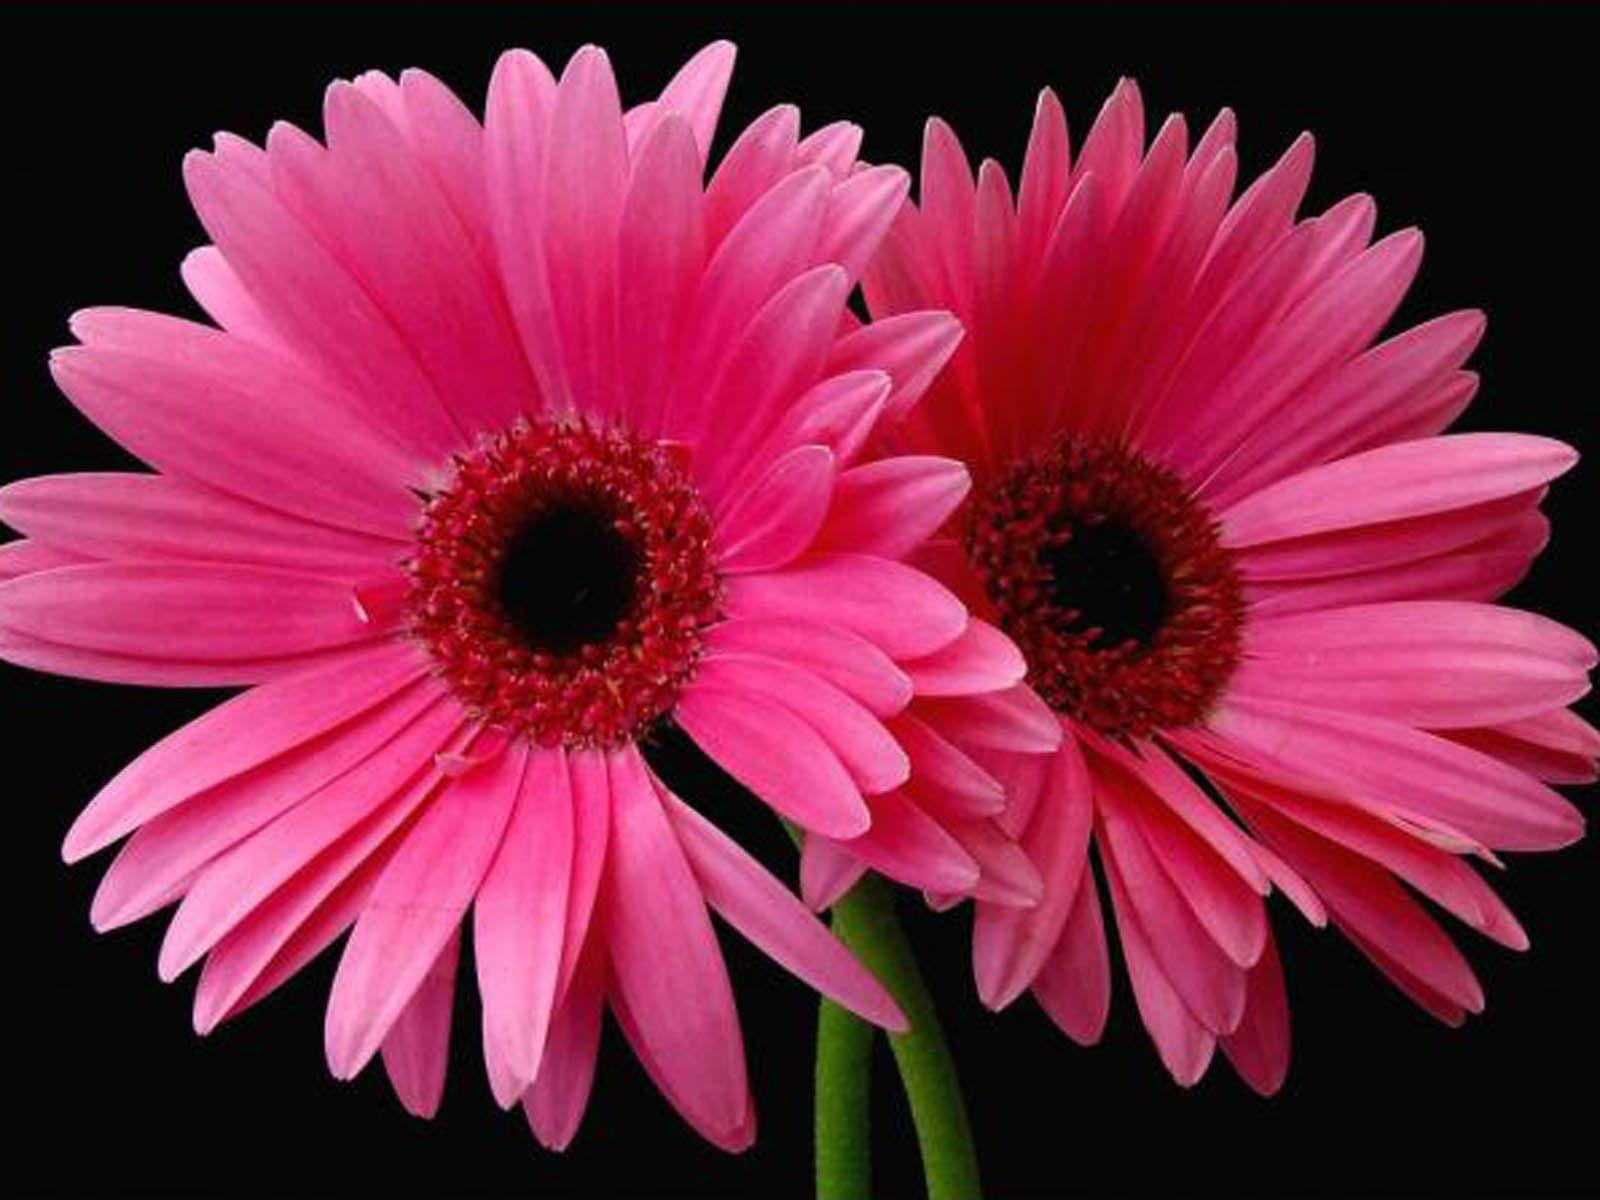 Pink Daisy Flower Wallpapers - Wallpaper Cave